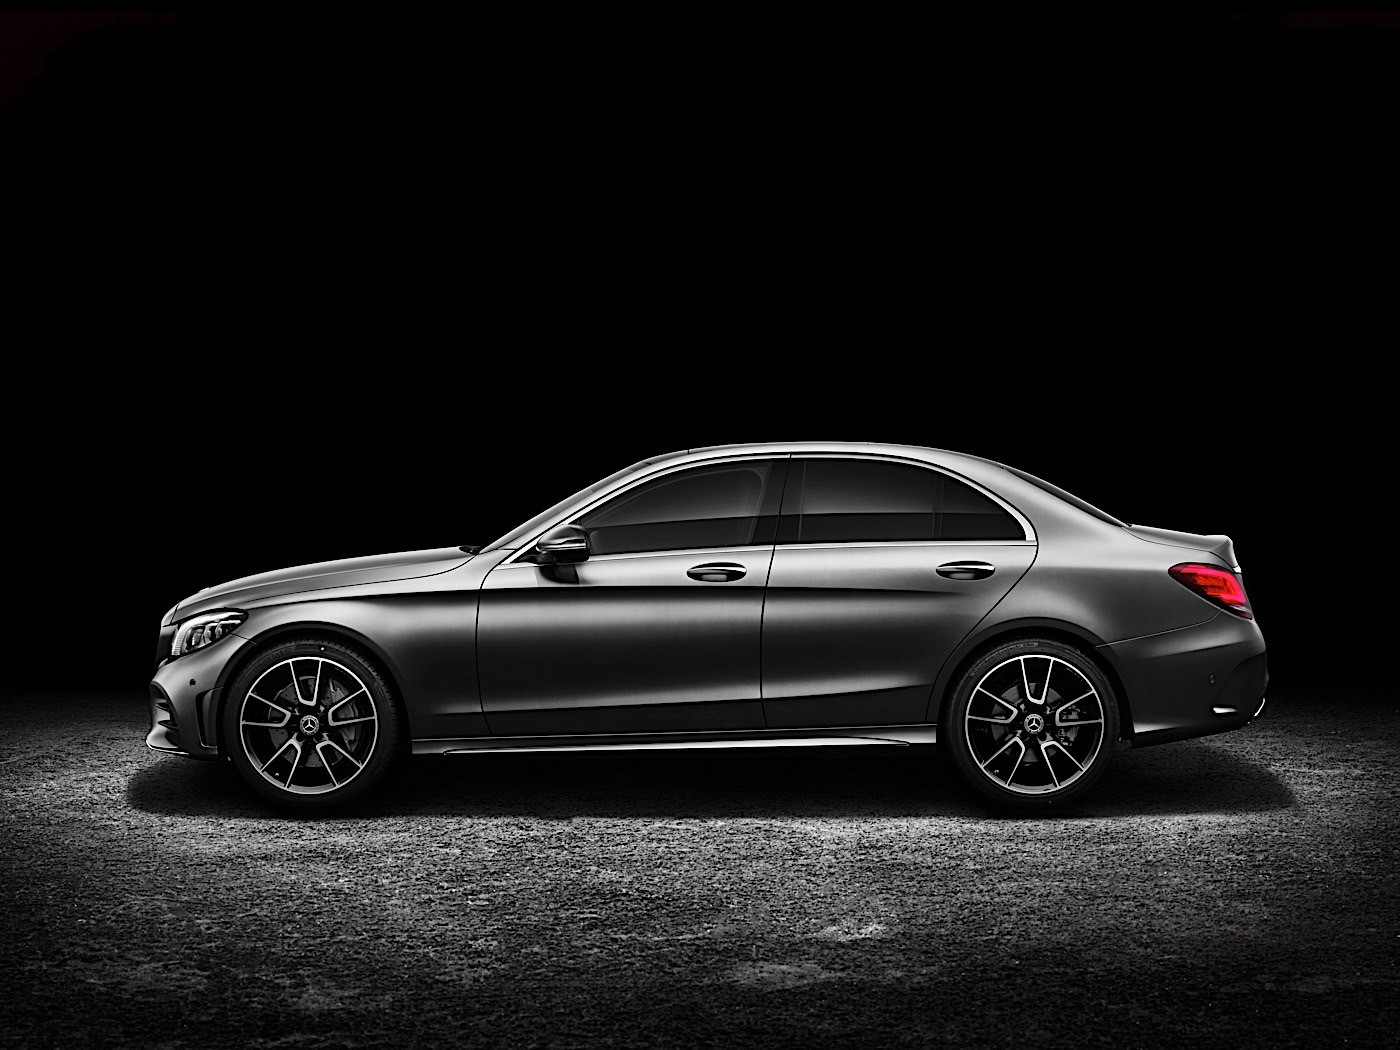 2019 Mercedes Benz C Class Sedan And Wagon Details And